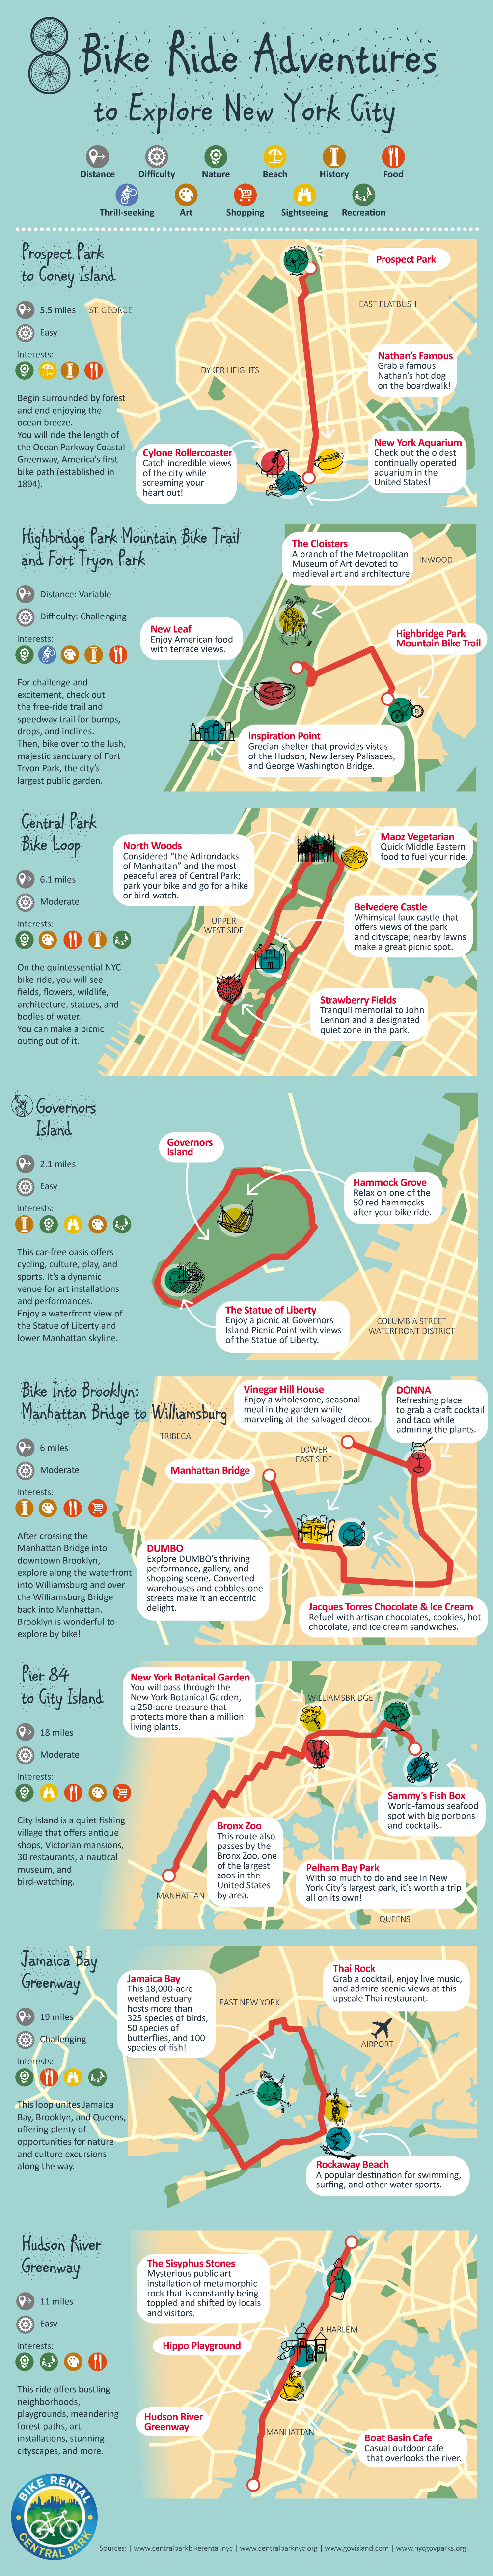 8 Bike Ride Adventures to Explore New York City - CentralParkBikeRental.nyc - Infographic - https://bikerentalcentralpark.com - Infographic